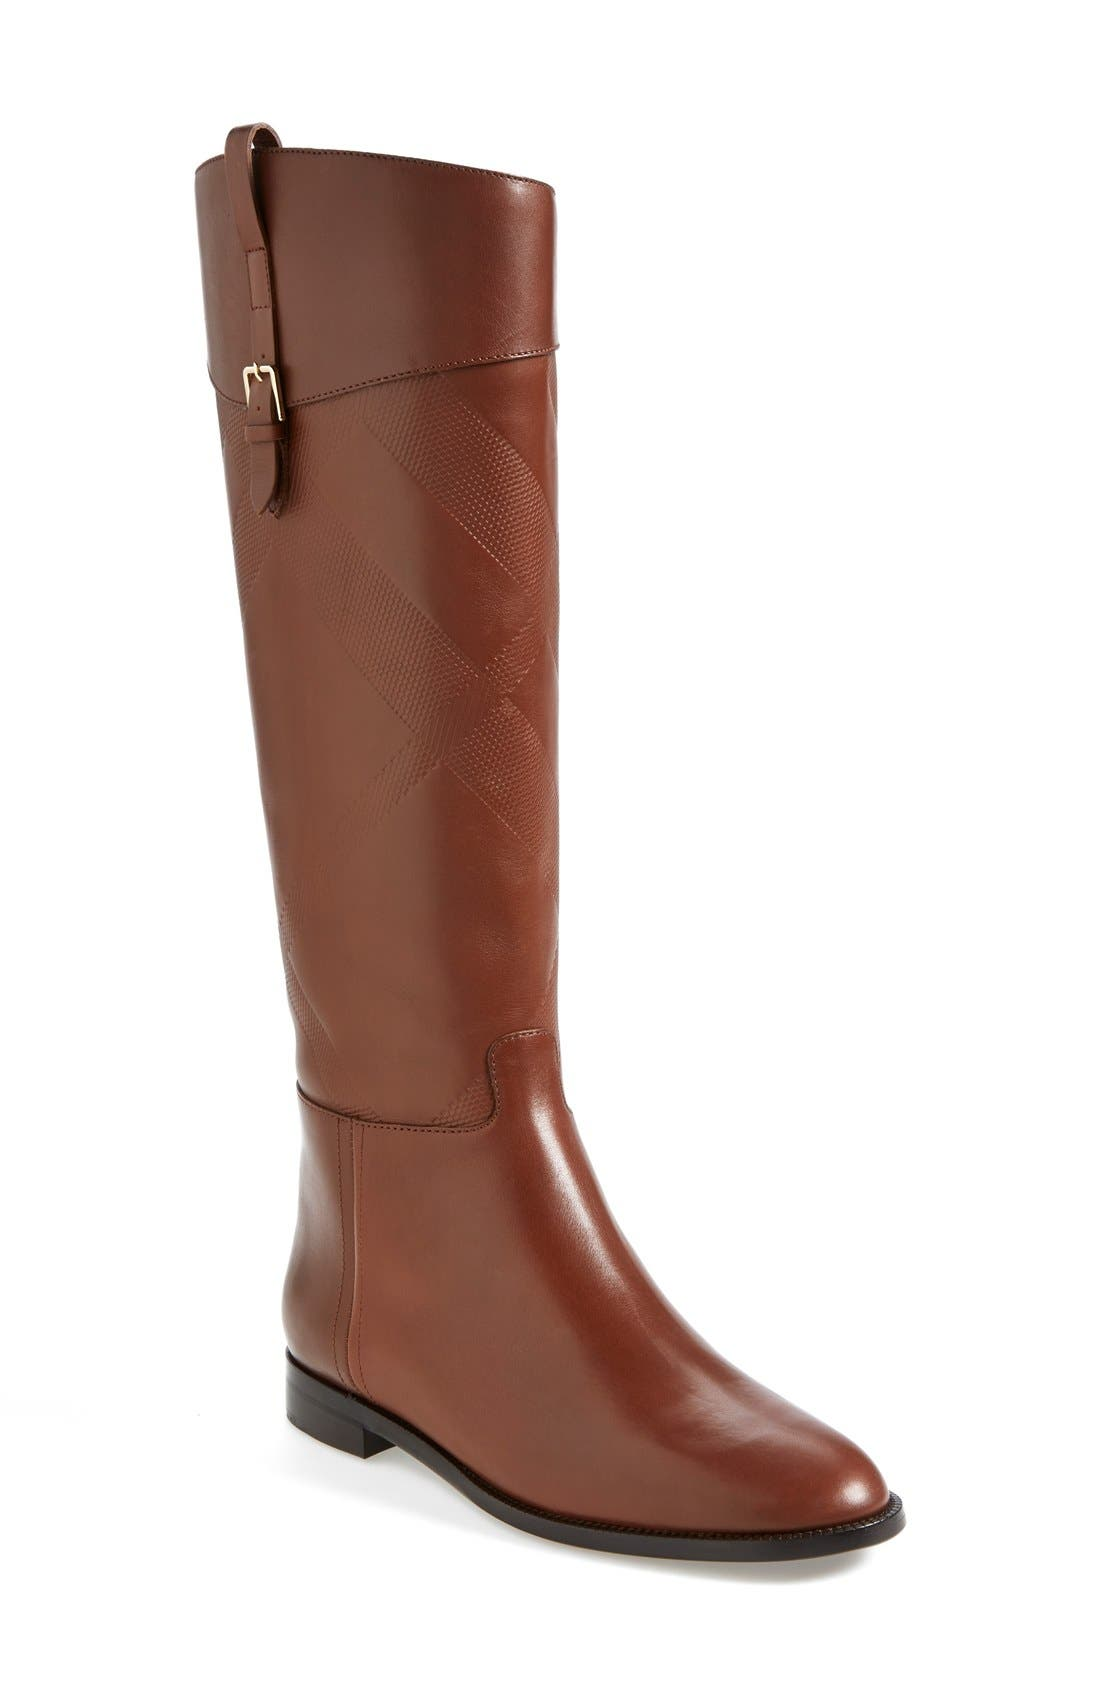 Alternate Image 1 Selected - Burberry 'Copse' Riding Boot (Women)